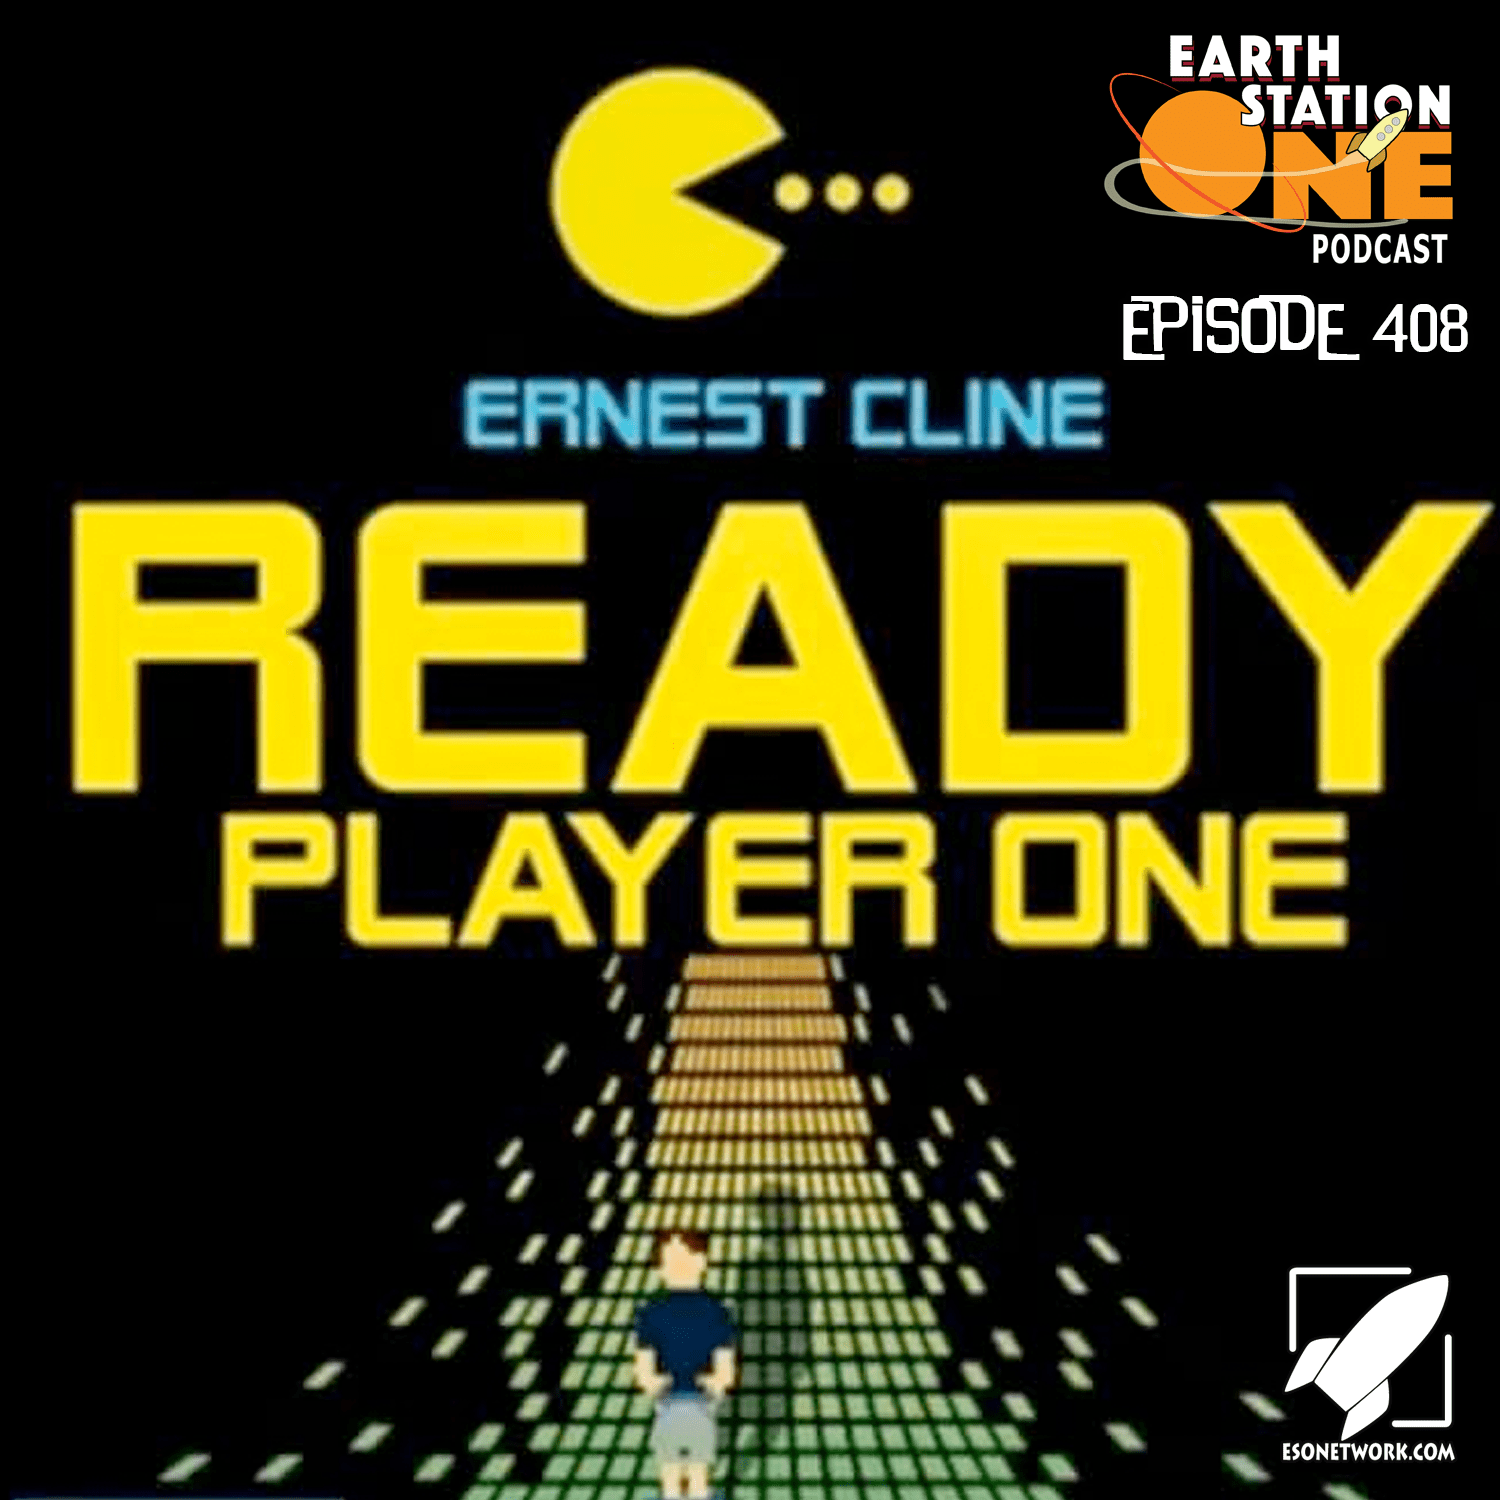 Earth Station One Podcast Ep 408